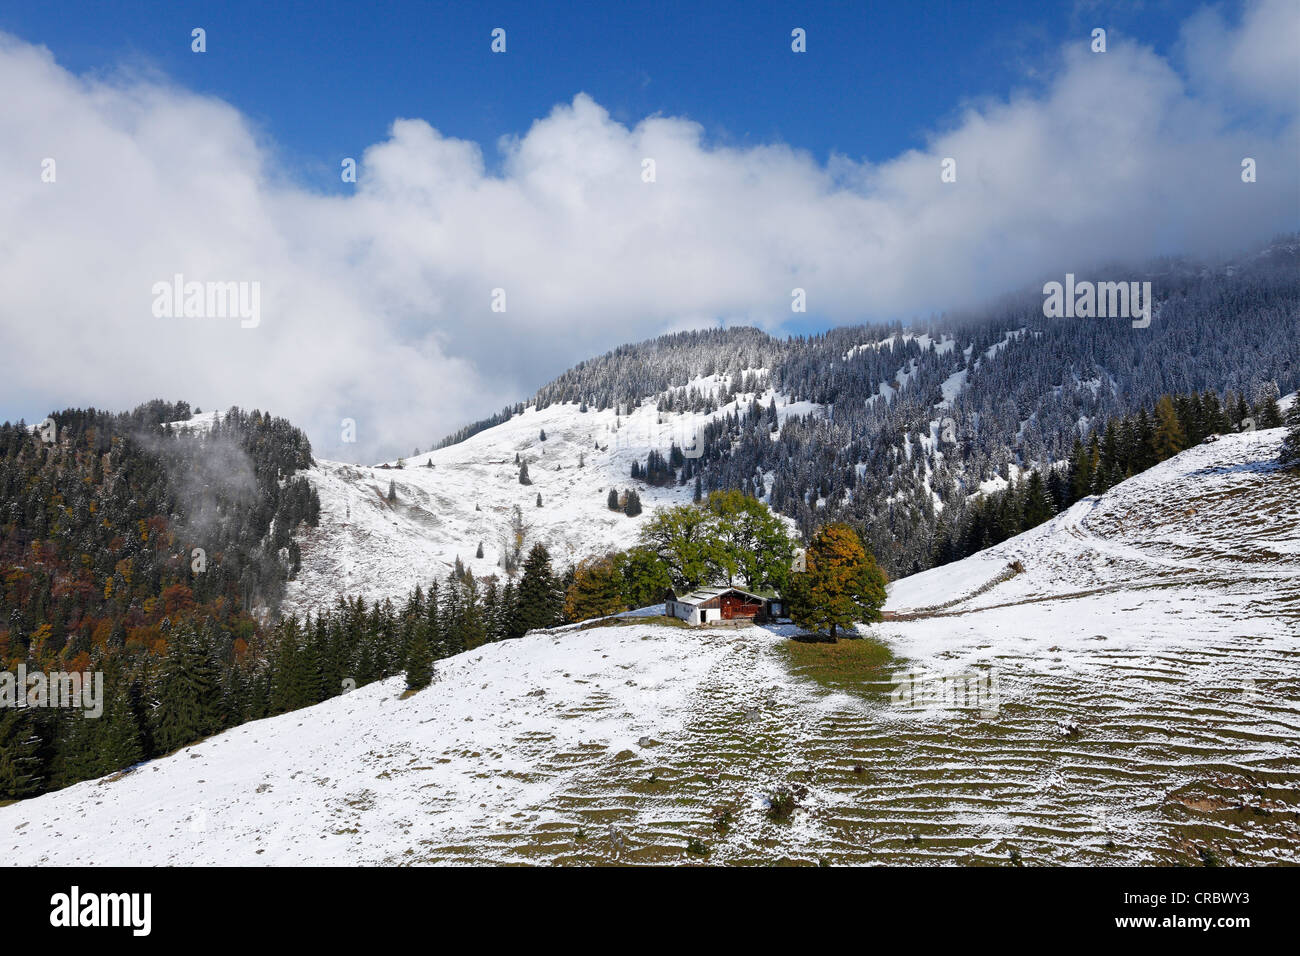 Lower Dickelalm alp on Mt Wendelstein, Bayrischzell, Mangfall mountains, Upper Bavaria, Bavaria, Germany, Europe - Stock Image